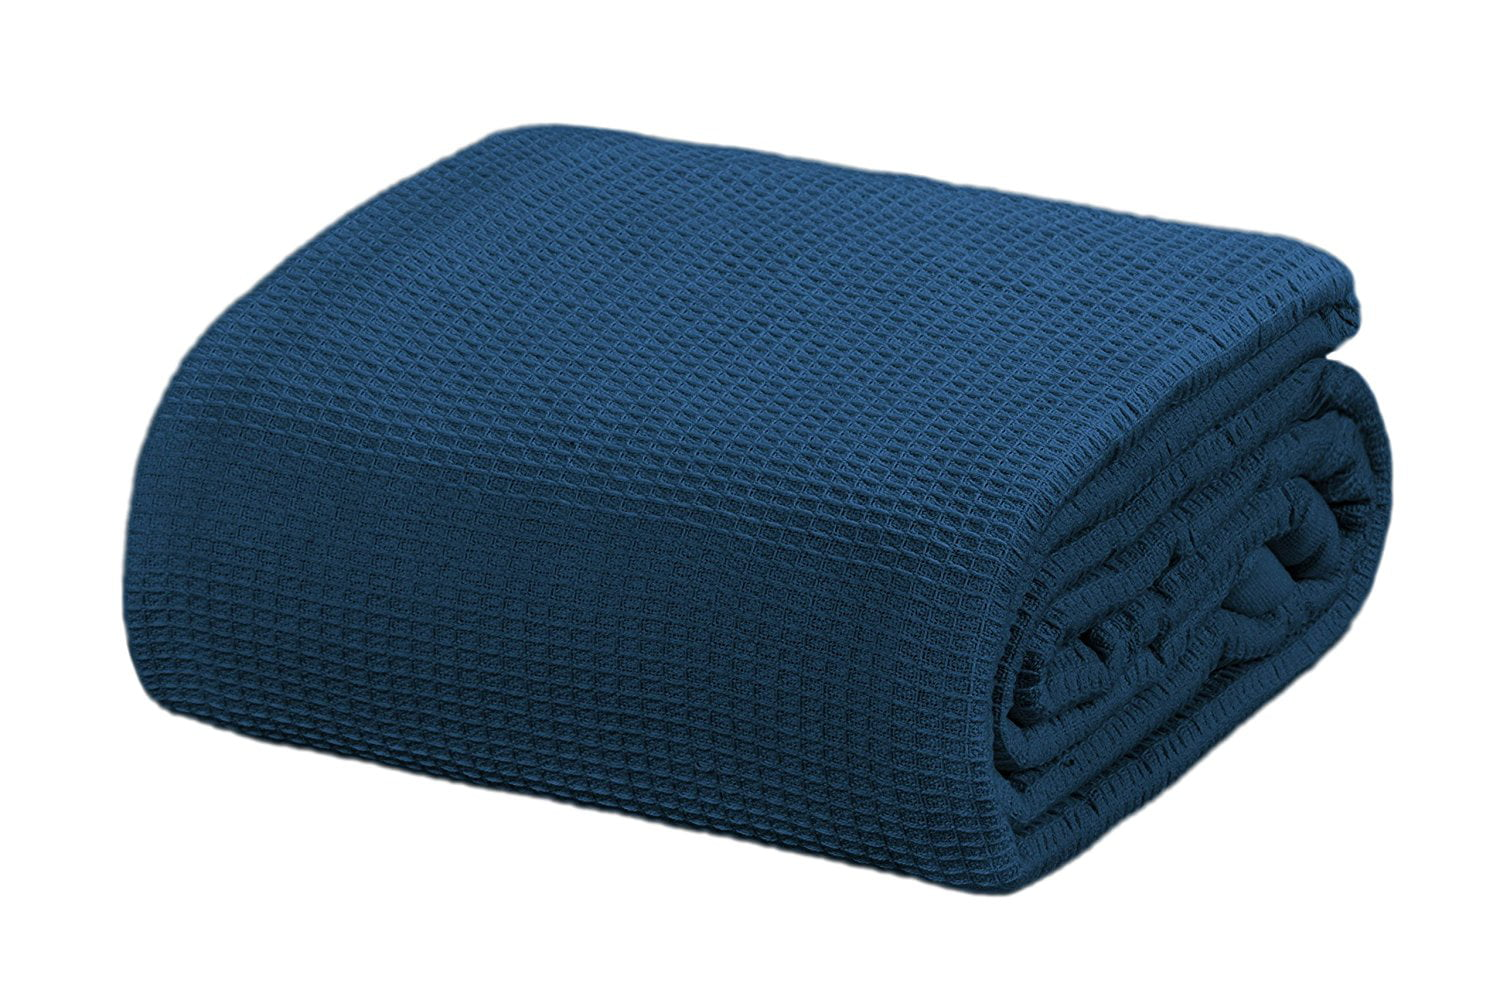 Crover All Season Thermal Waffle Cotton Twin Blanket Deep Blue by